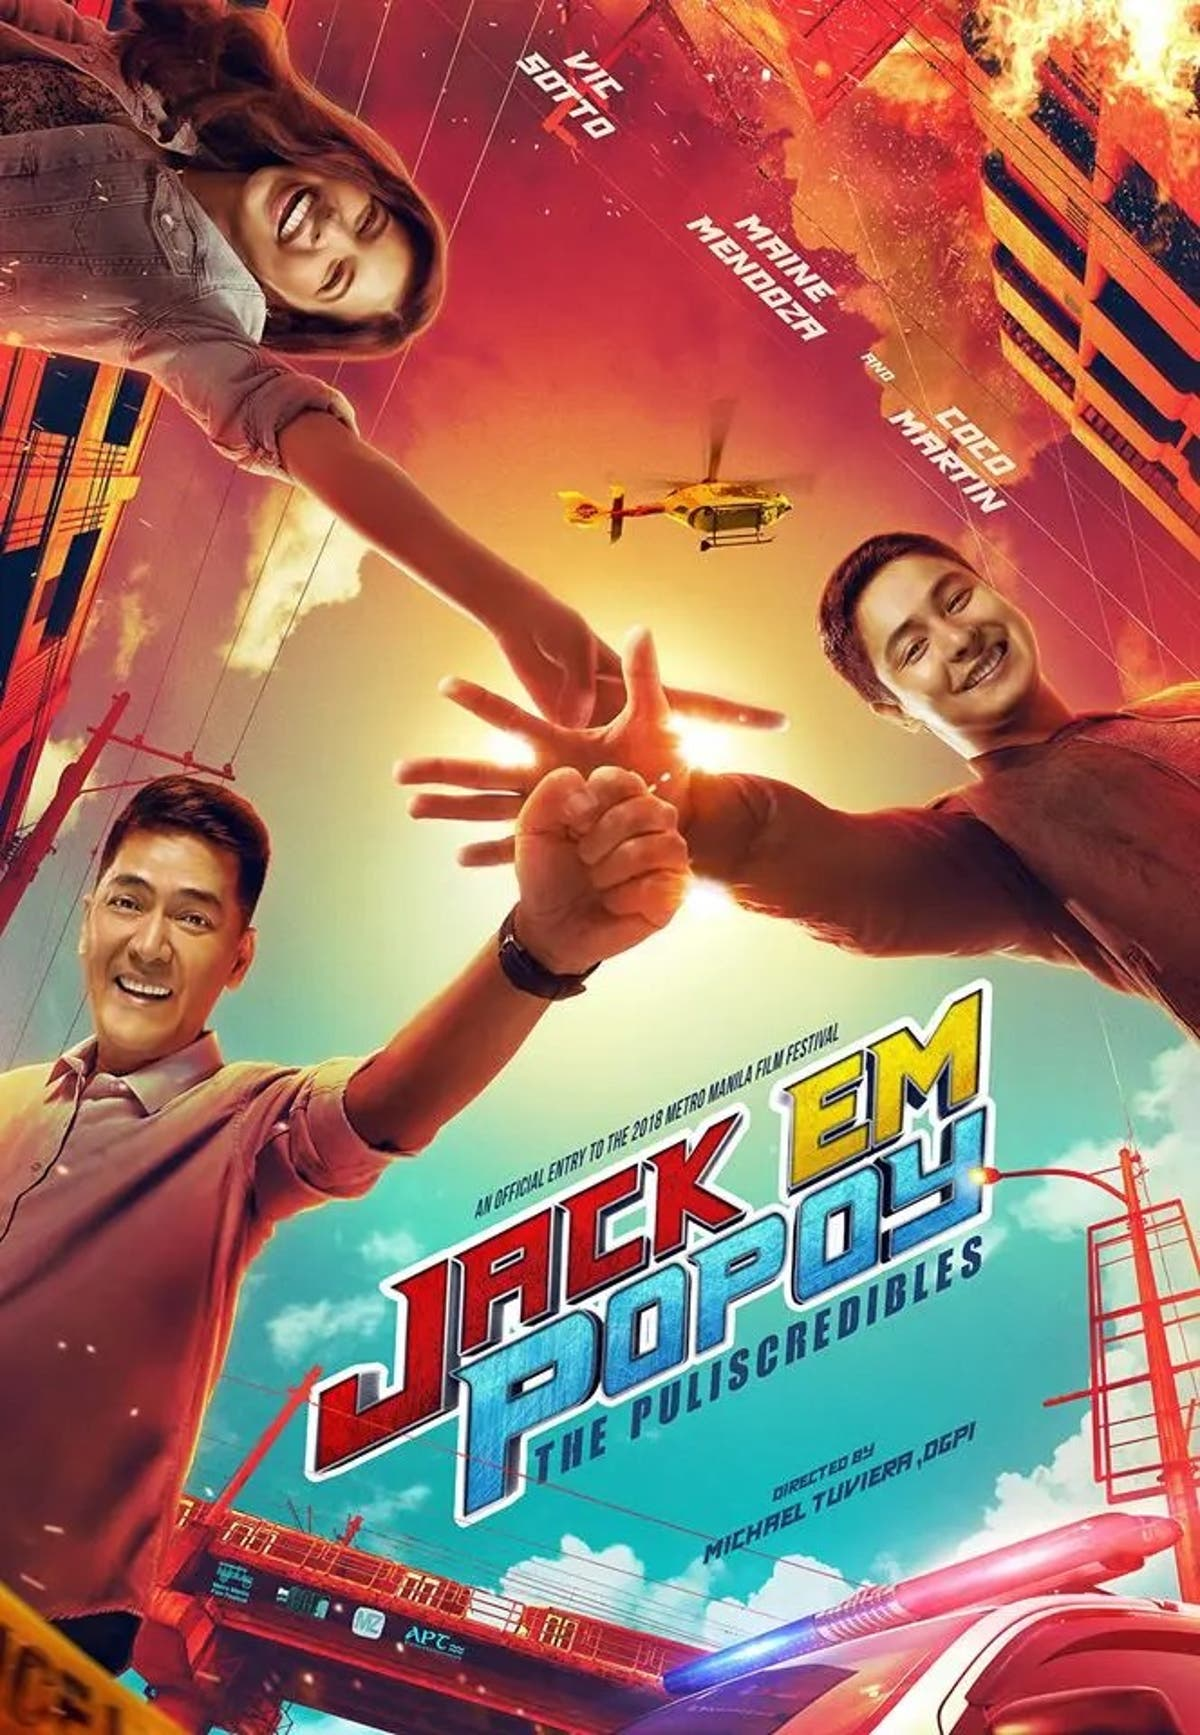 Jack Em Popoy The Puliscredibles Official Movie Poster Starmometer